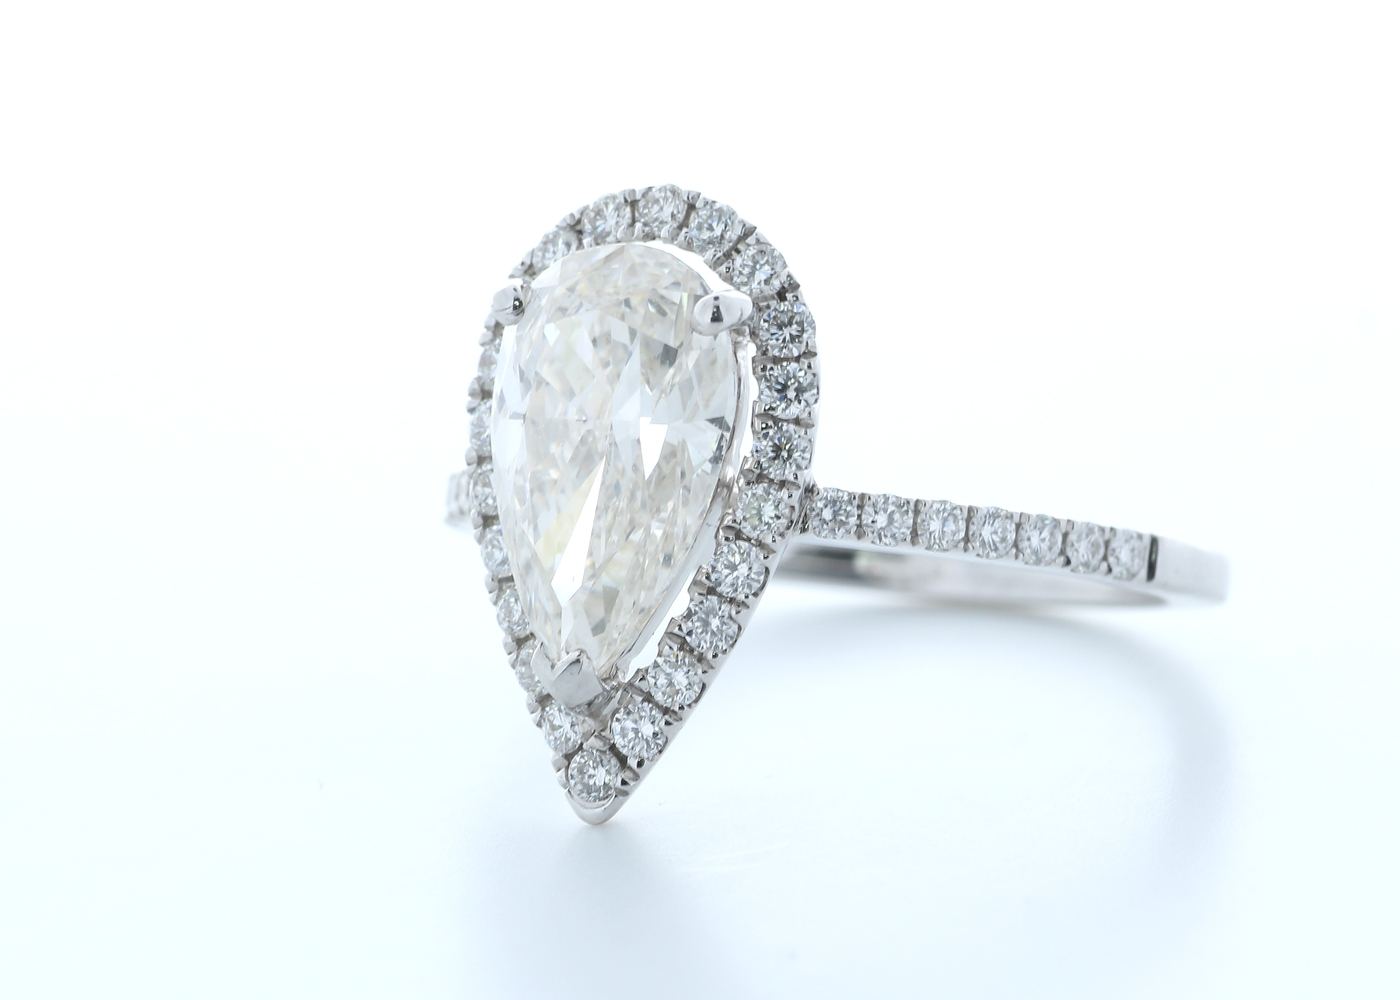 18ct White Gold Single Stone With Halo Setting Ring 2.54 (2.04) Carats - Image 2 of 5